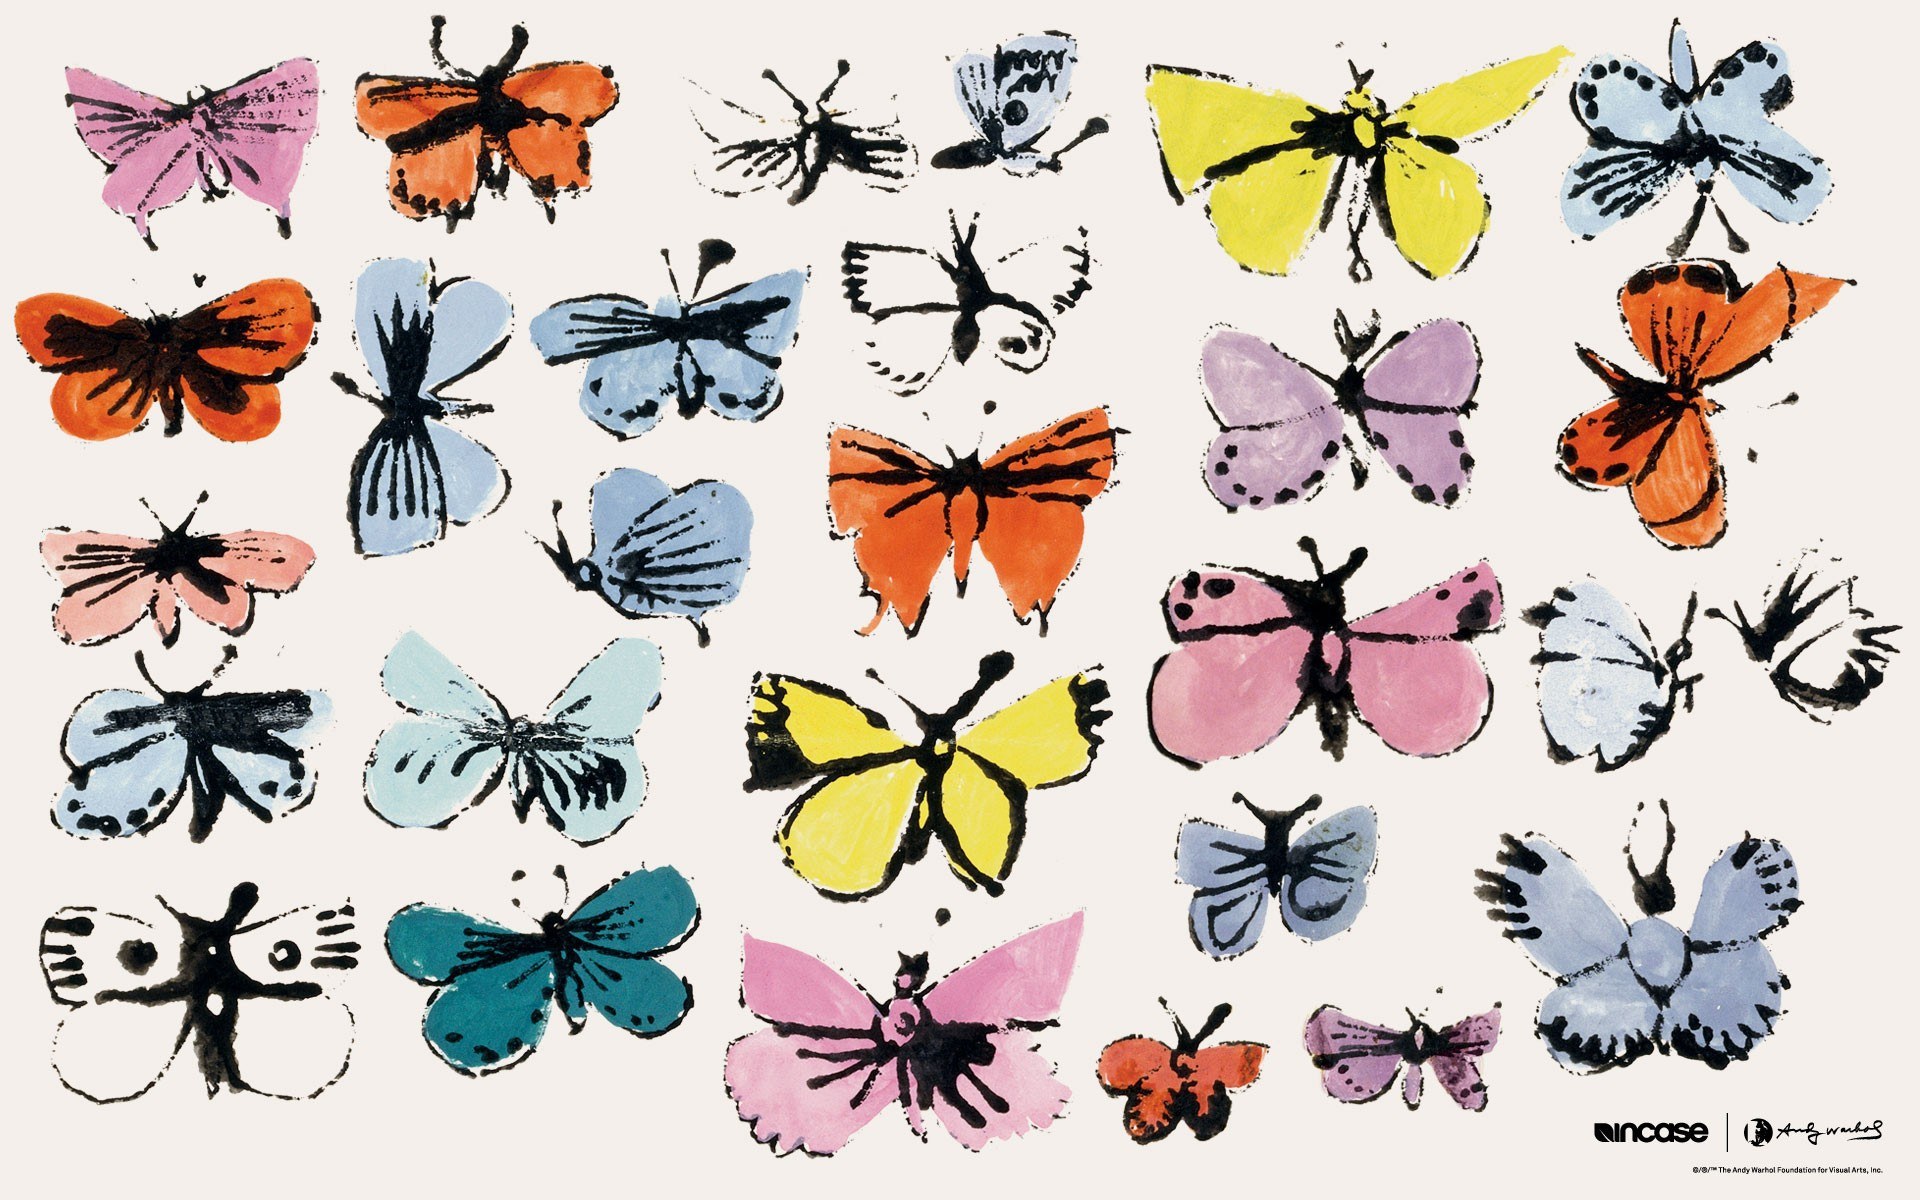 Painting Andy Warhol Butterflies wallpapers and images   wallpapers 1920x1200